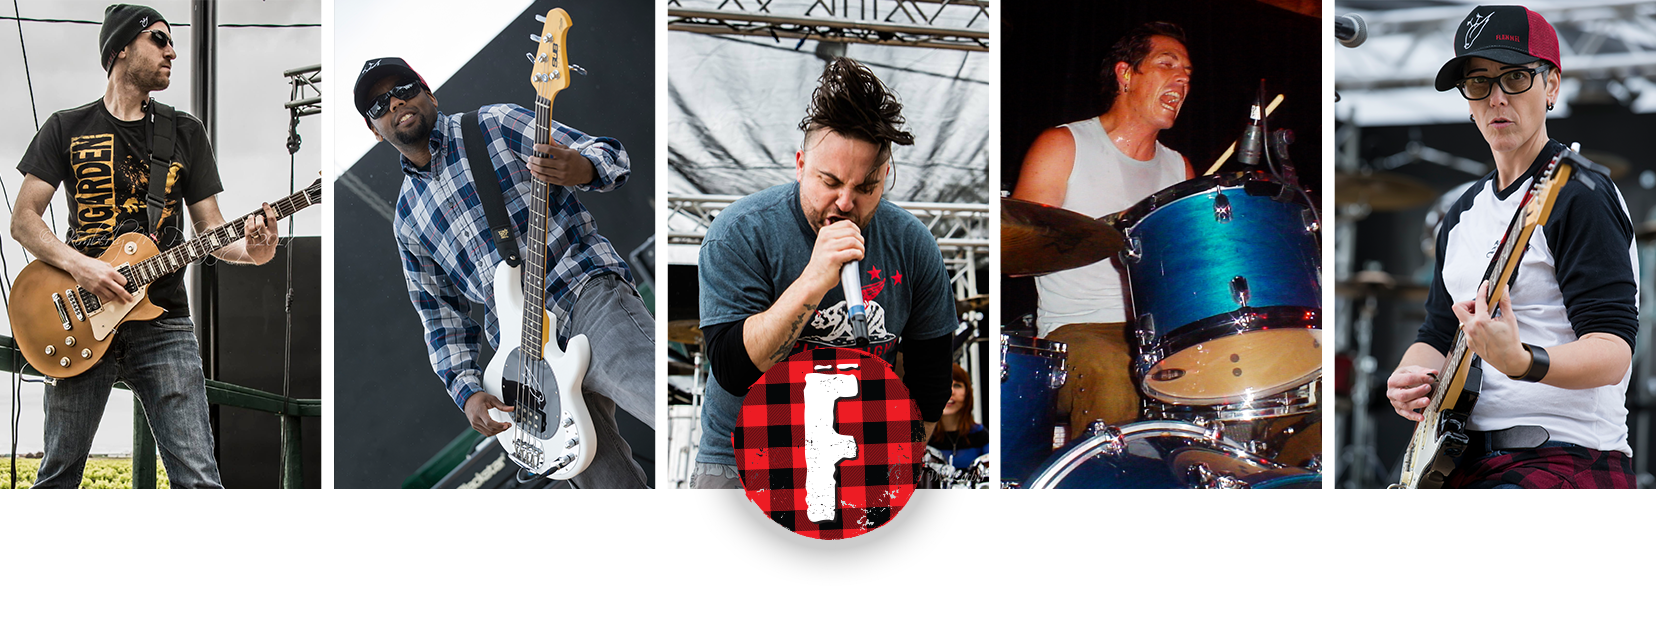 Flannel – Bay Area's Premiere '90s Alternative & Grunge